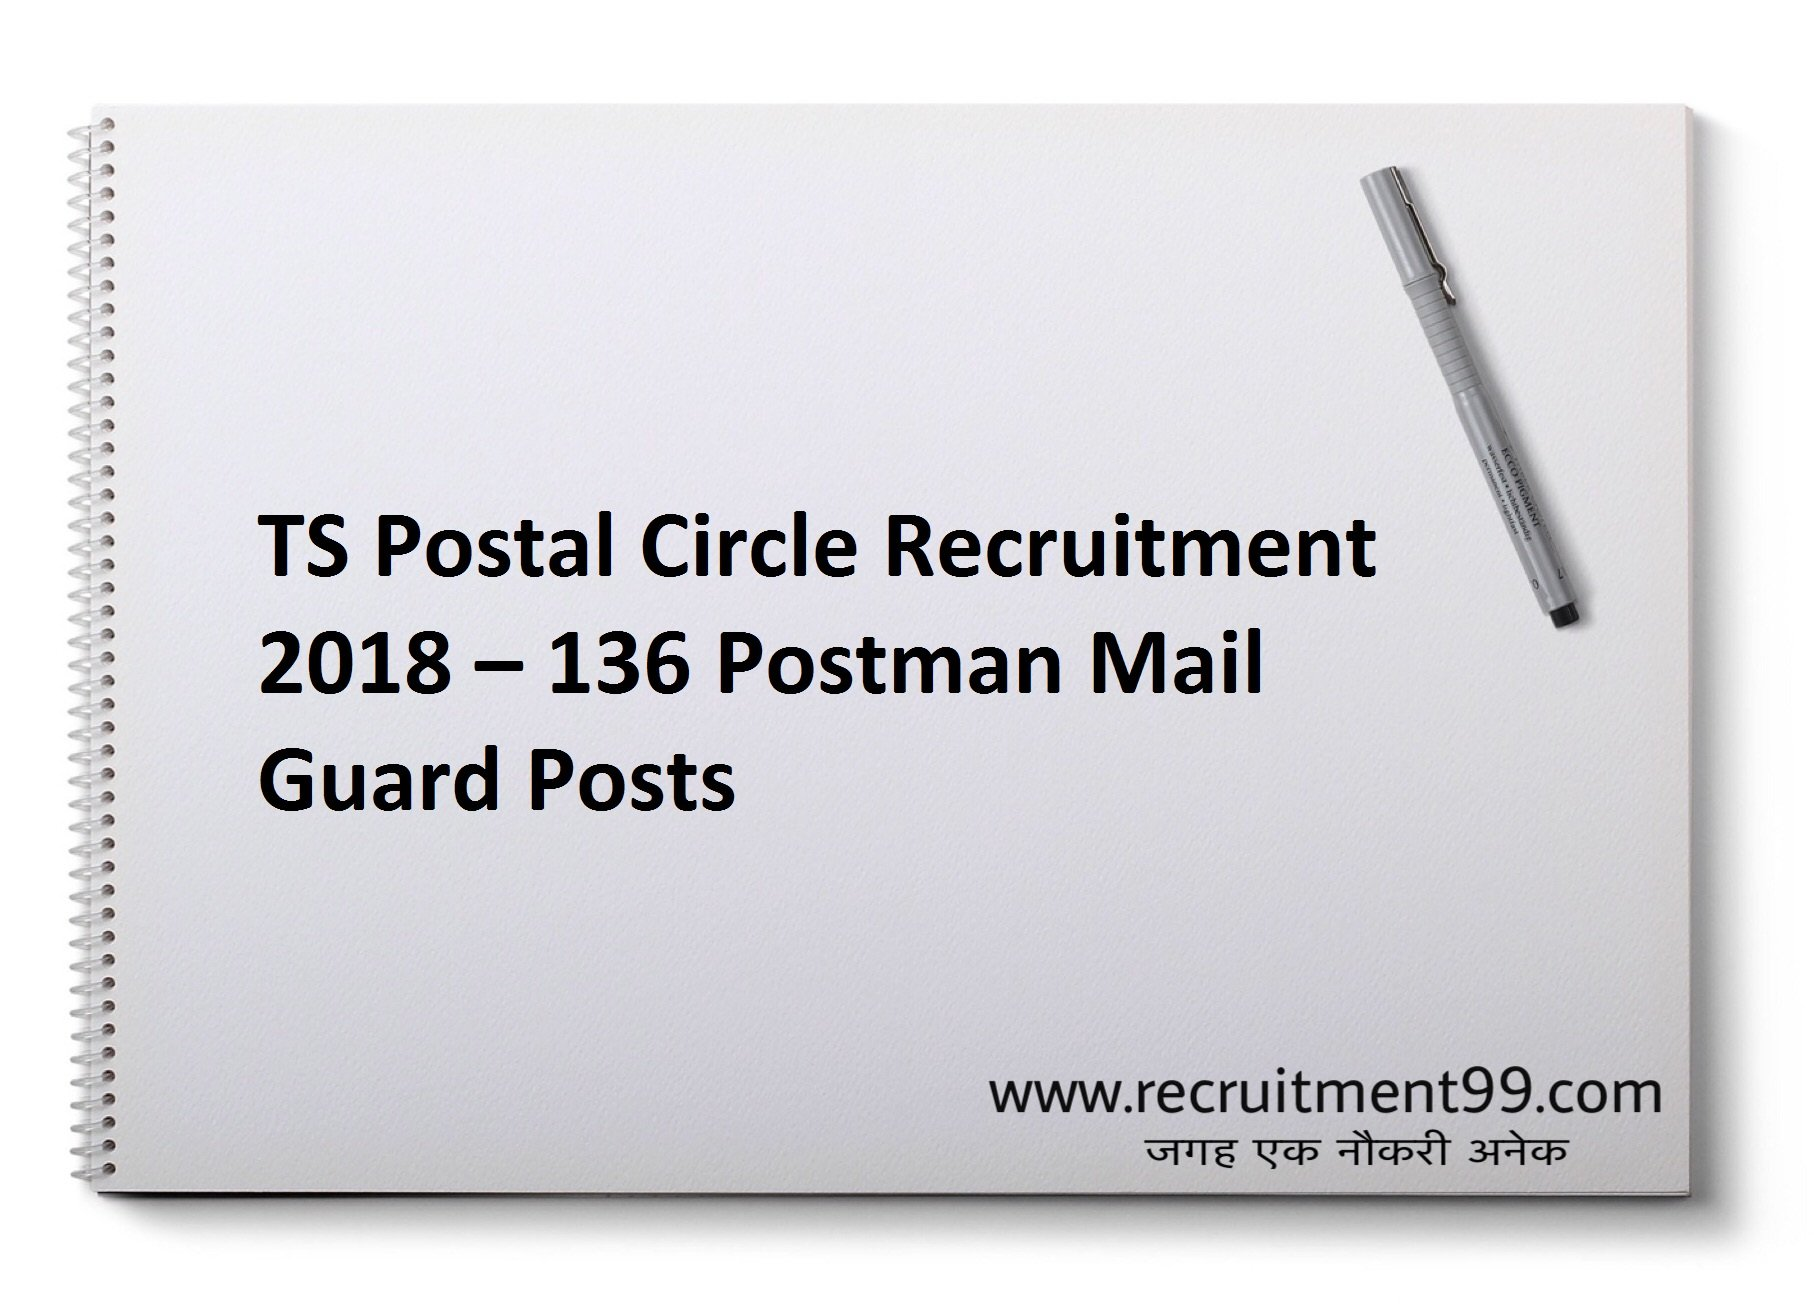 TS Postal Circle Postman Mail Guard Recruitment Admit Card & Result 2018